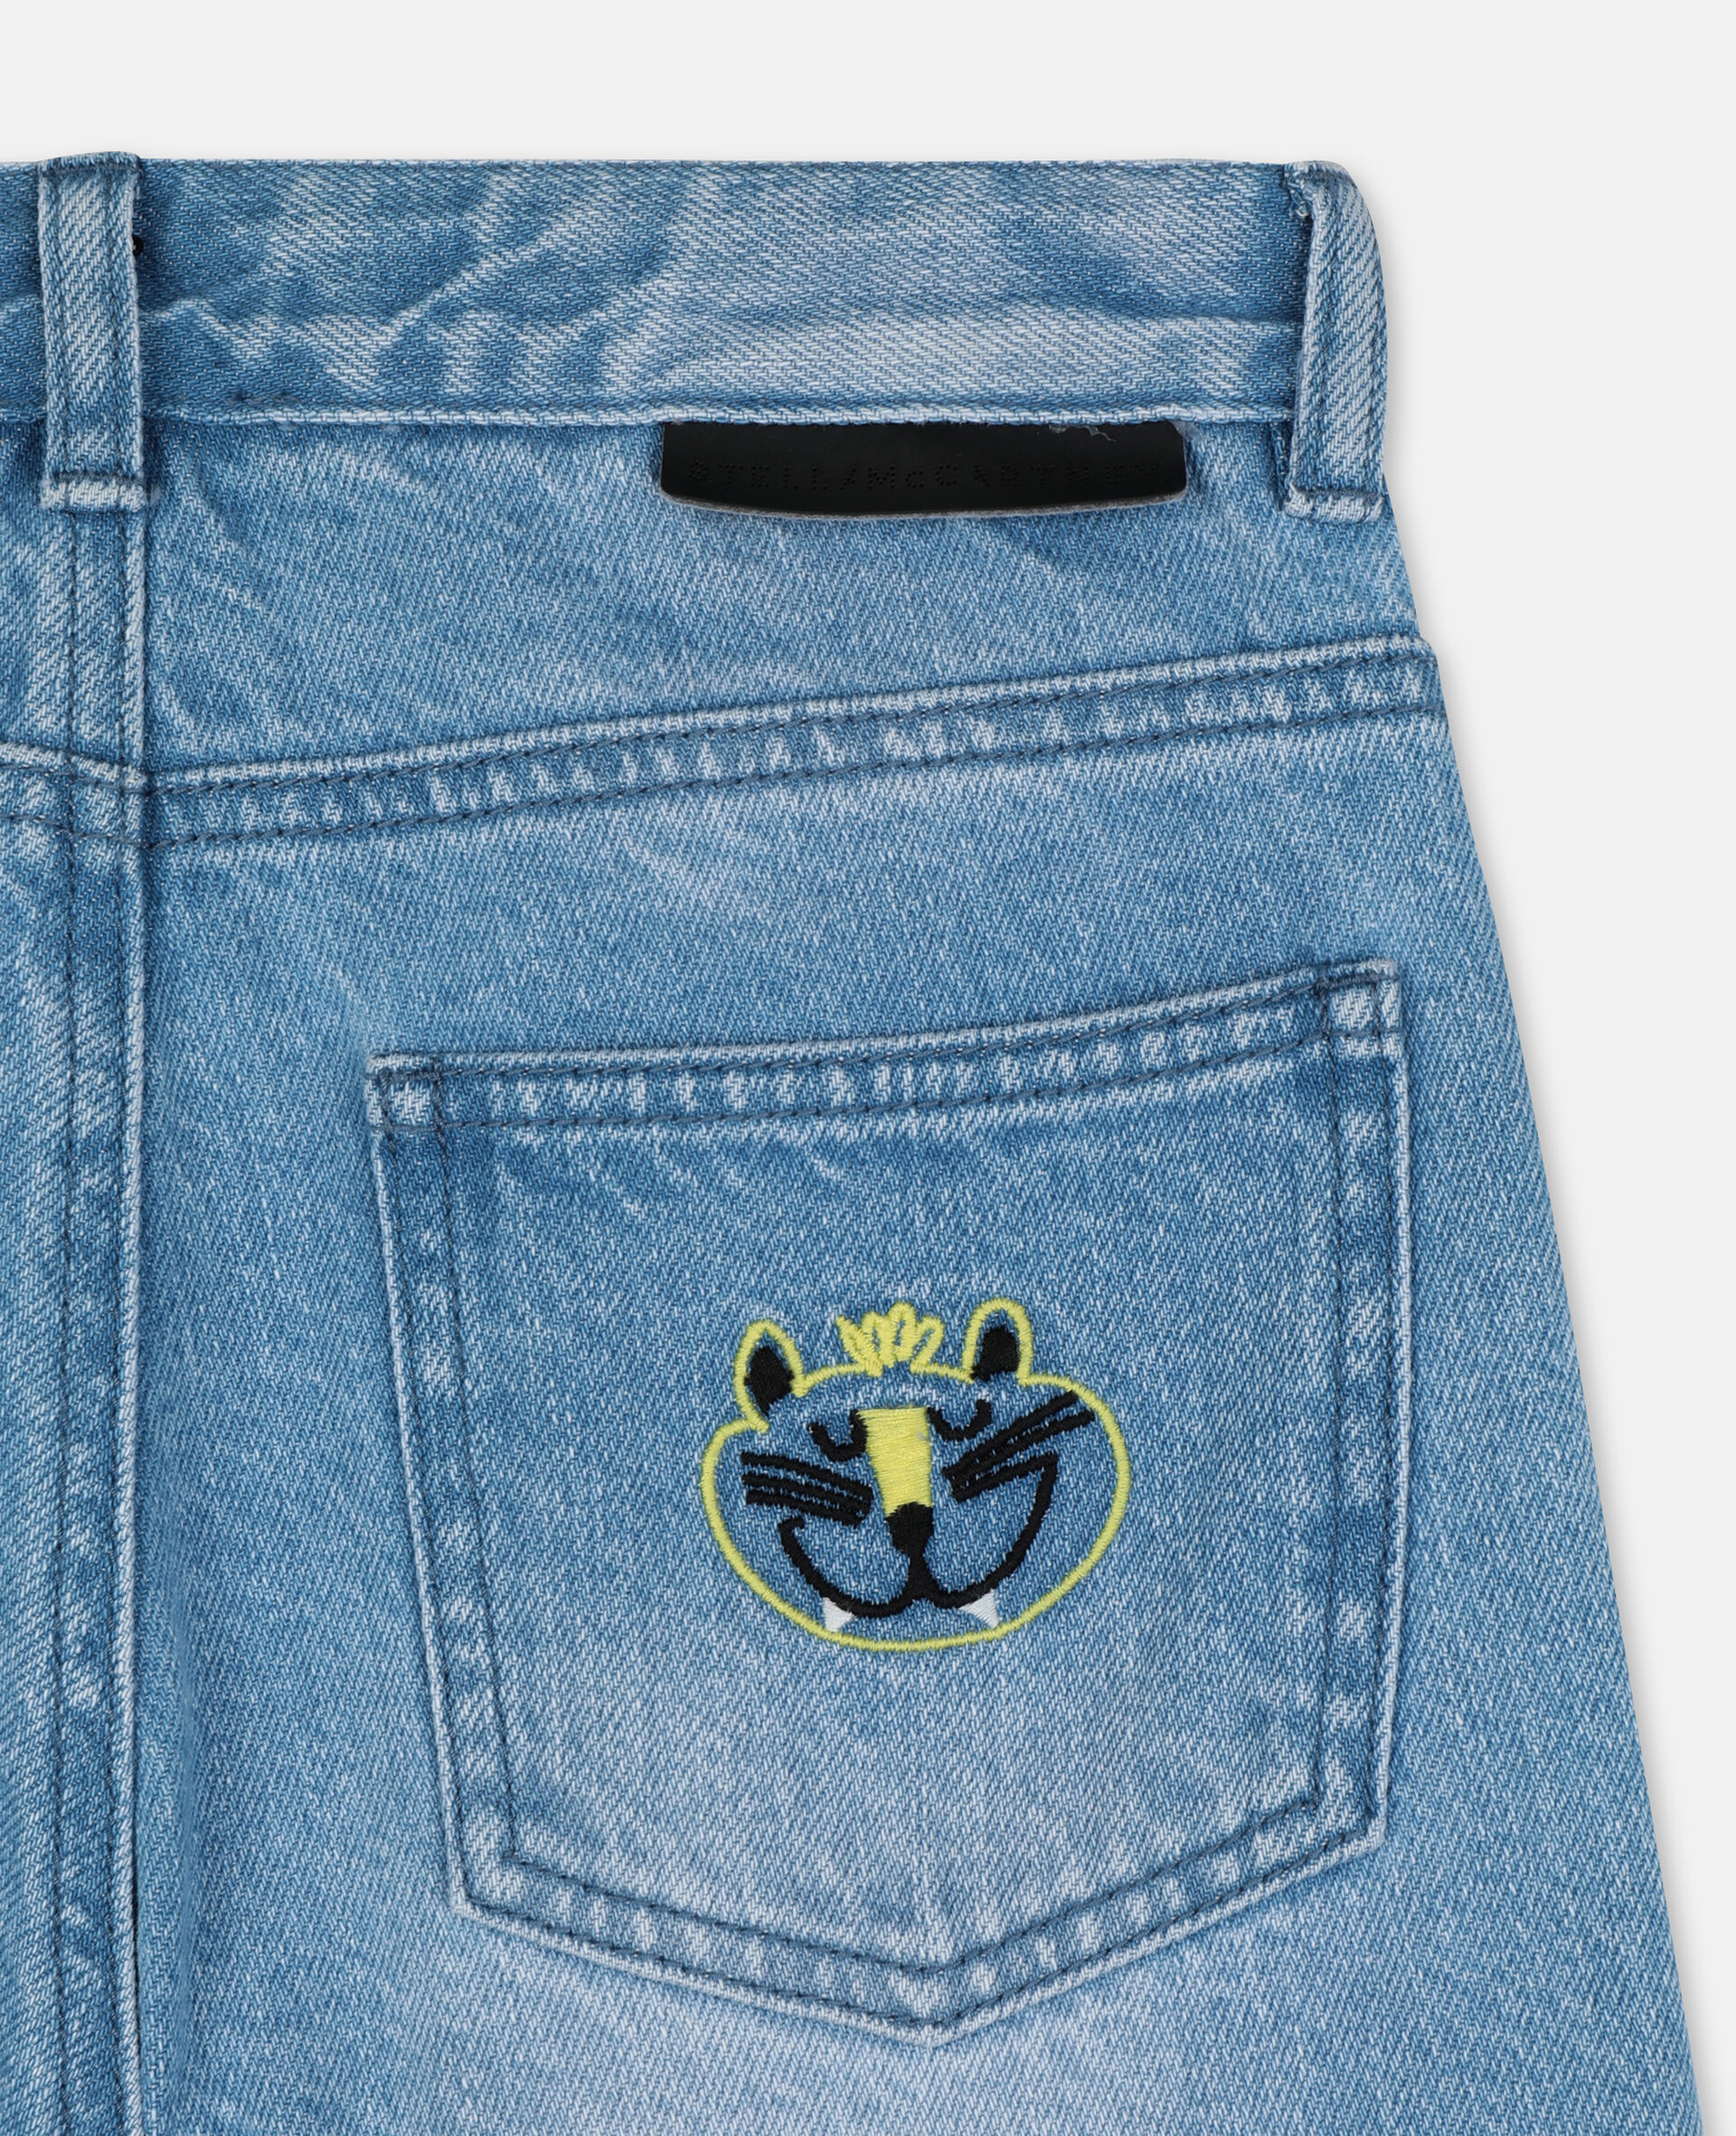 Embroidered Cats Boyfriend Denim Trousers-Blue-large image number 2